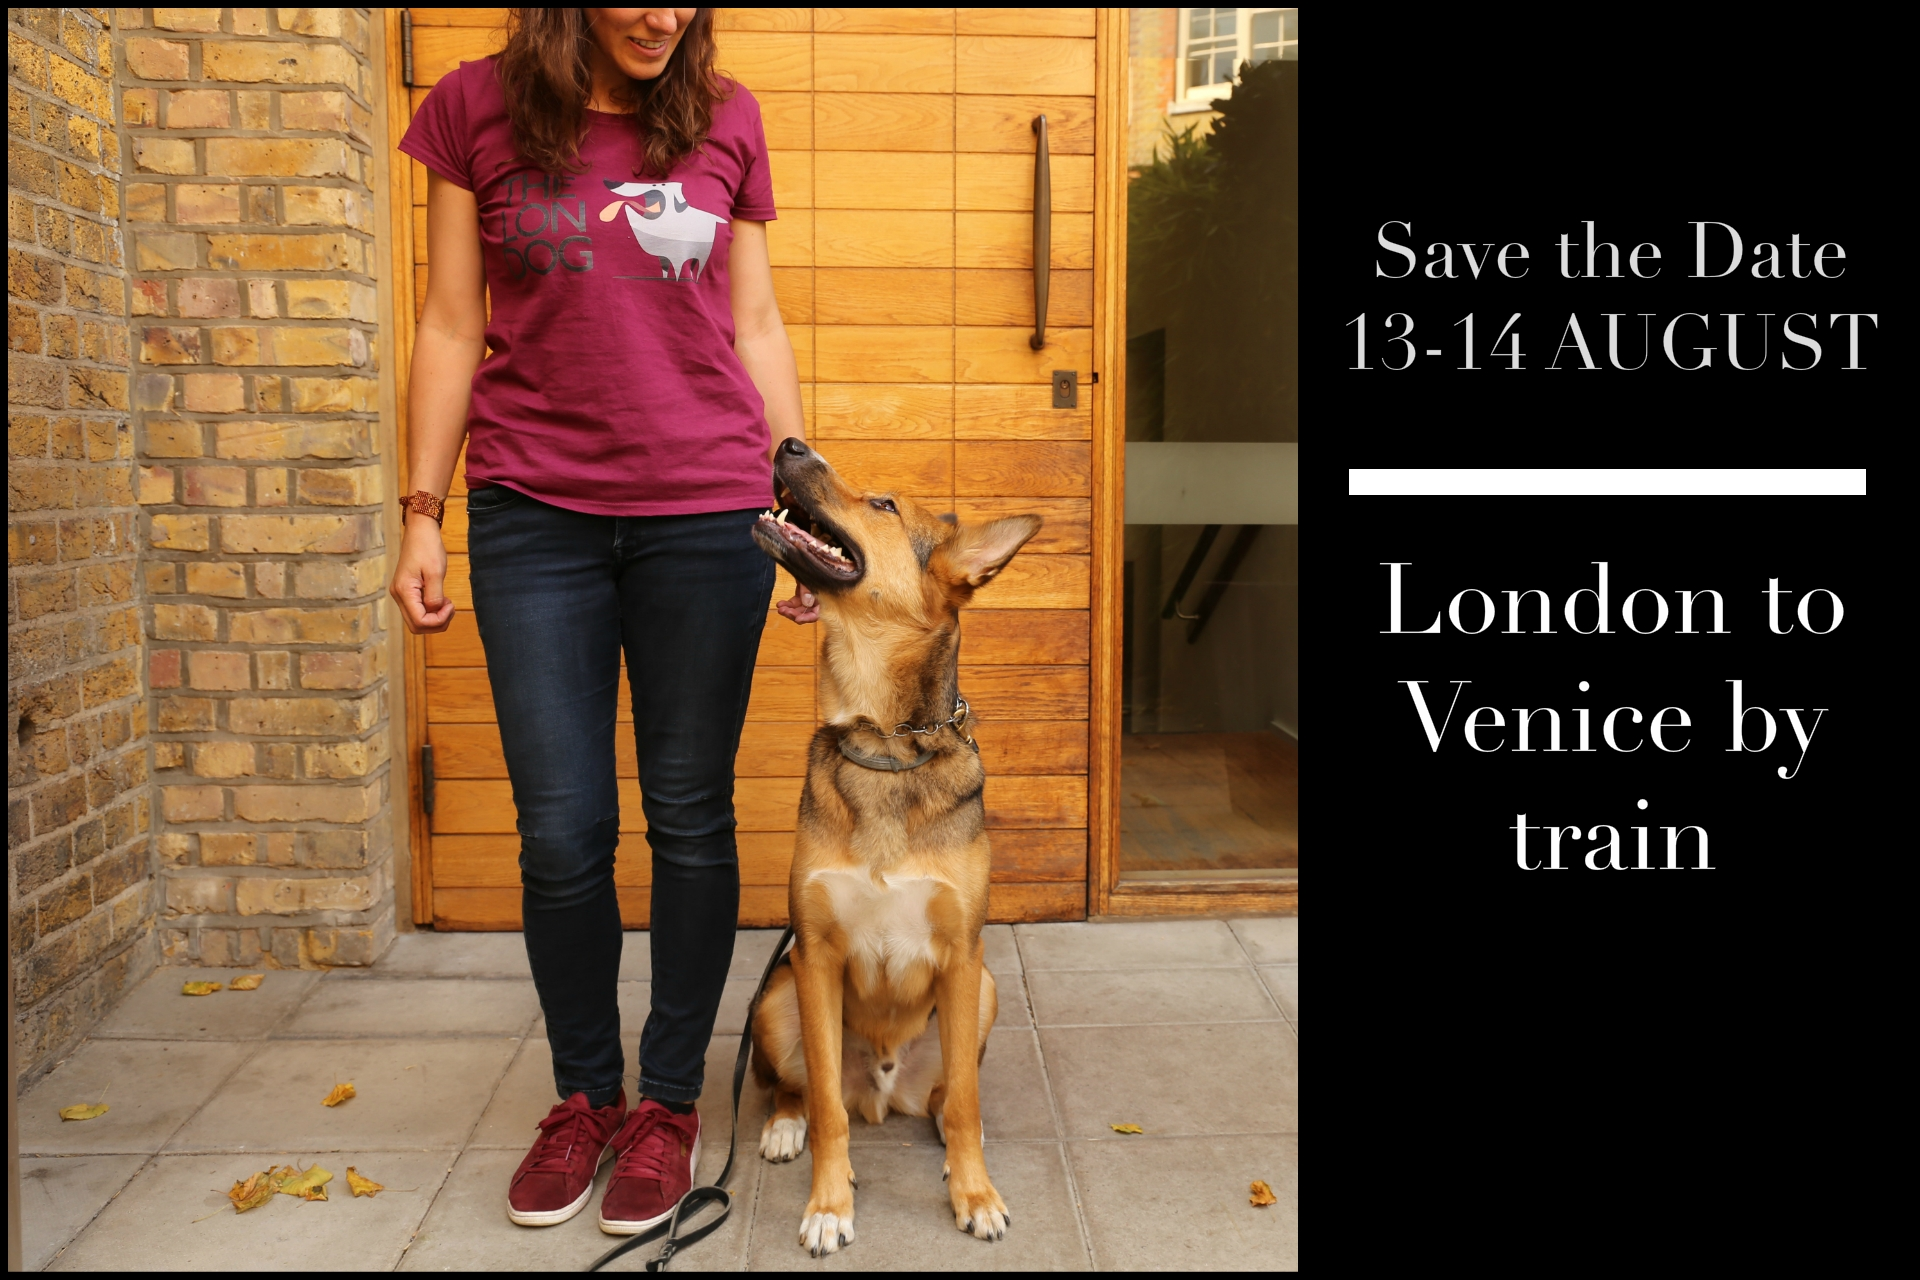 London to Venice by train with a dog. Argo the londog looks up